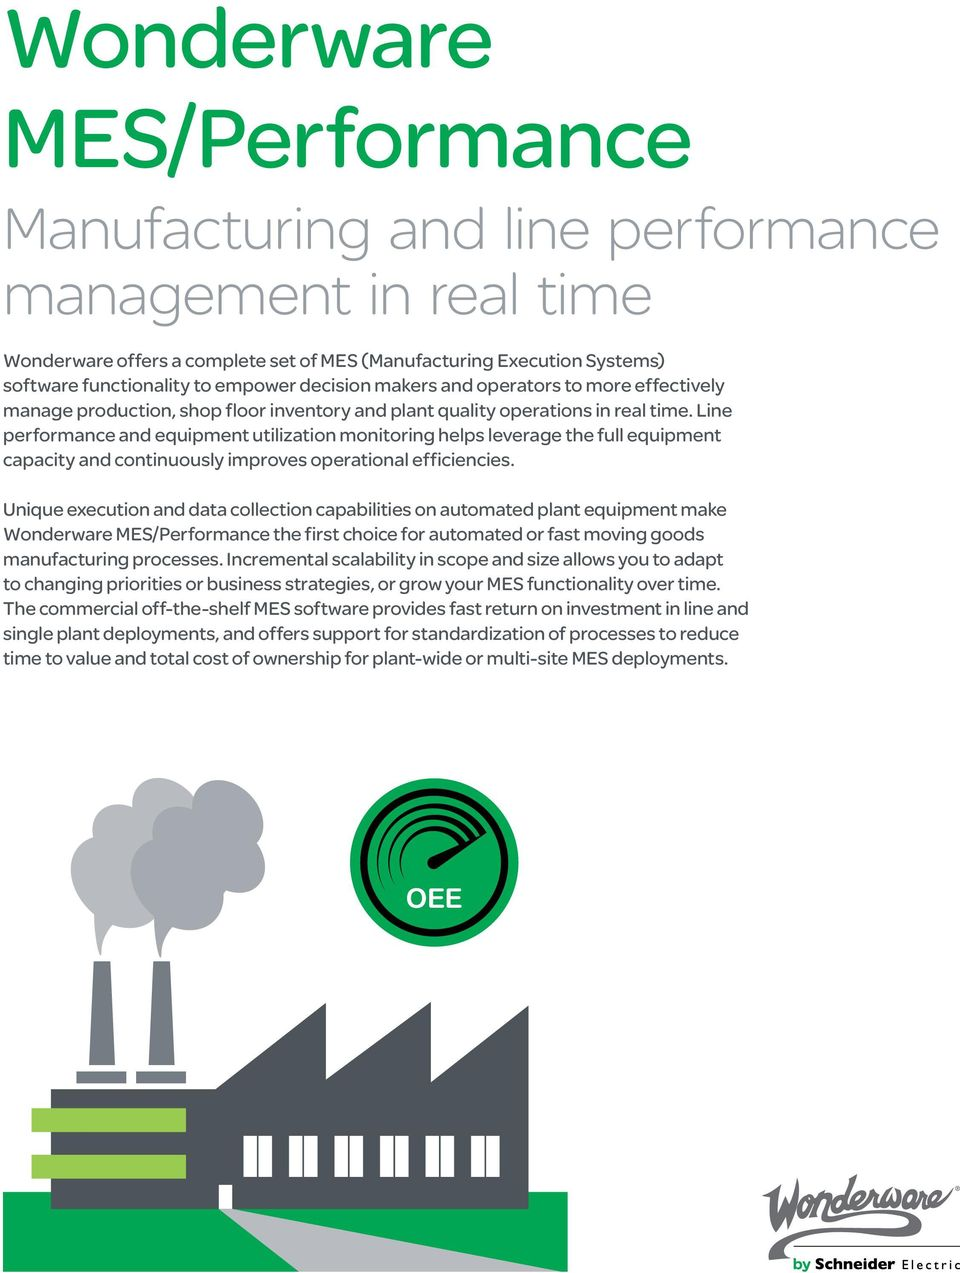 Line performance and equipment utilization monitoring helps leverage the full equipment capacity and continuously improves operational efficiencies.